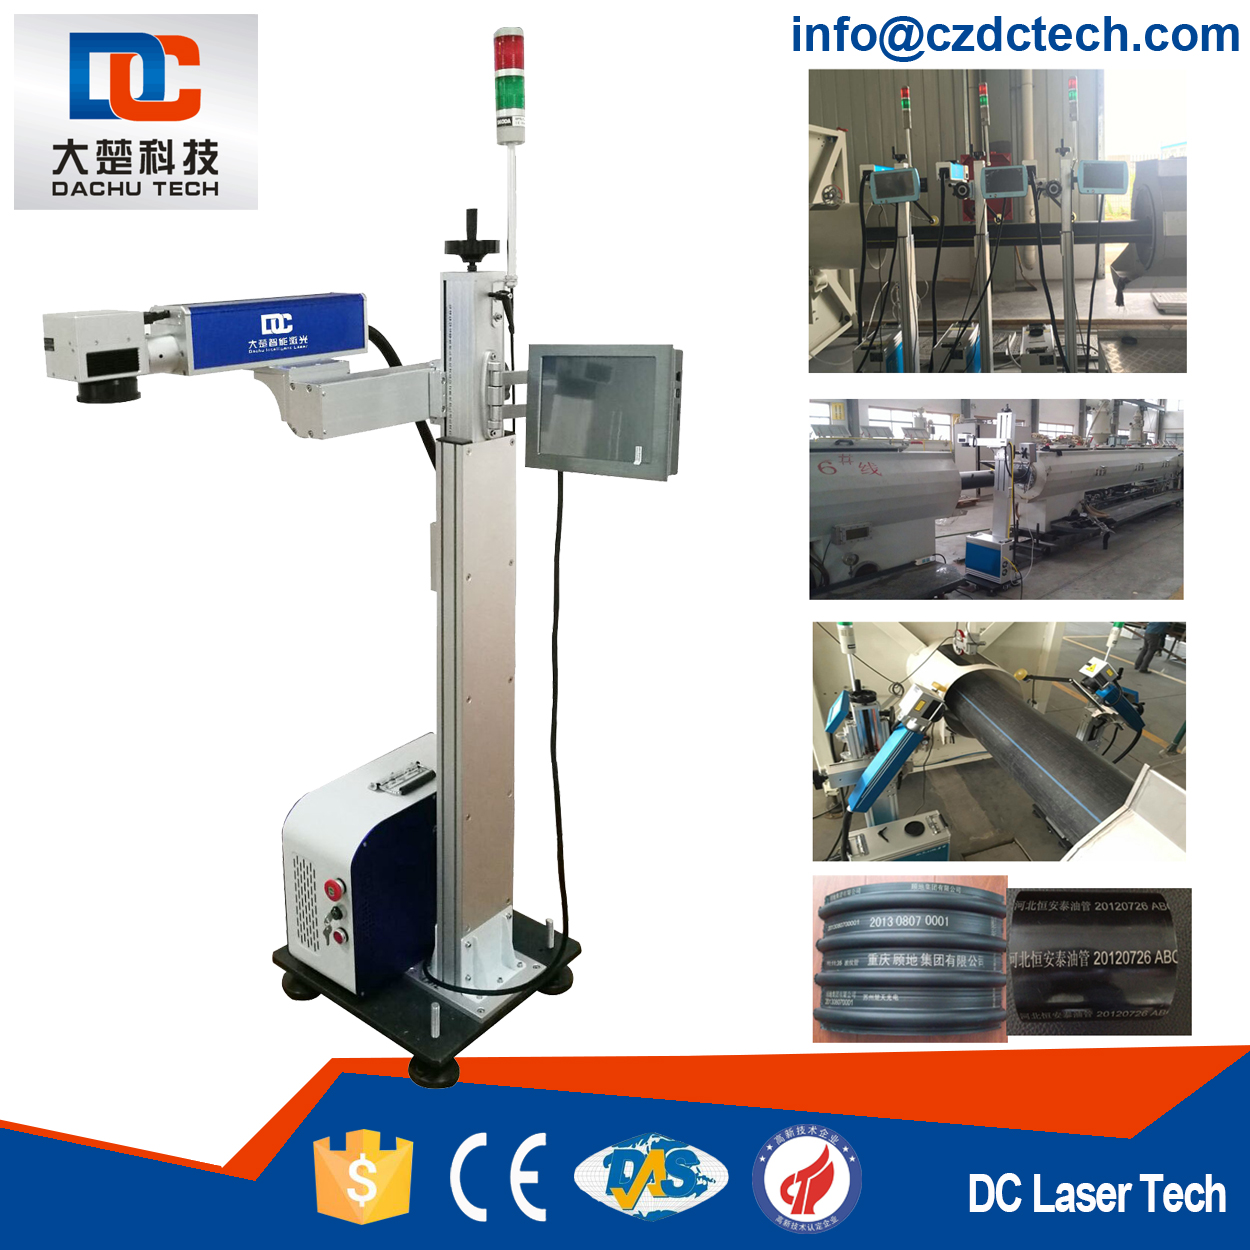 DC LaserTech Portable 20W Fiber Laser Marking Machine for PE PVC Plastic Single-pipe extrusion line